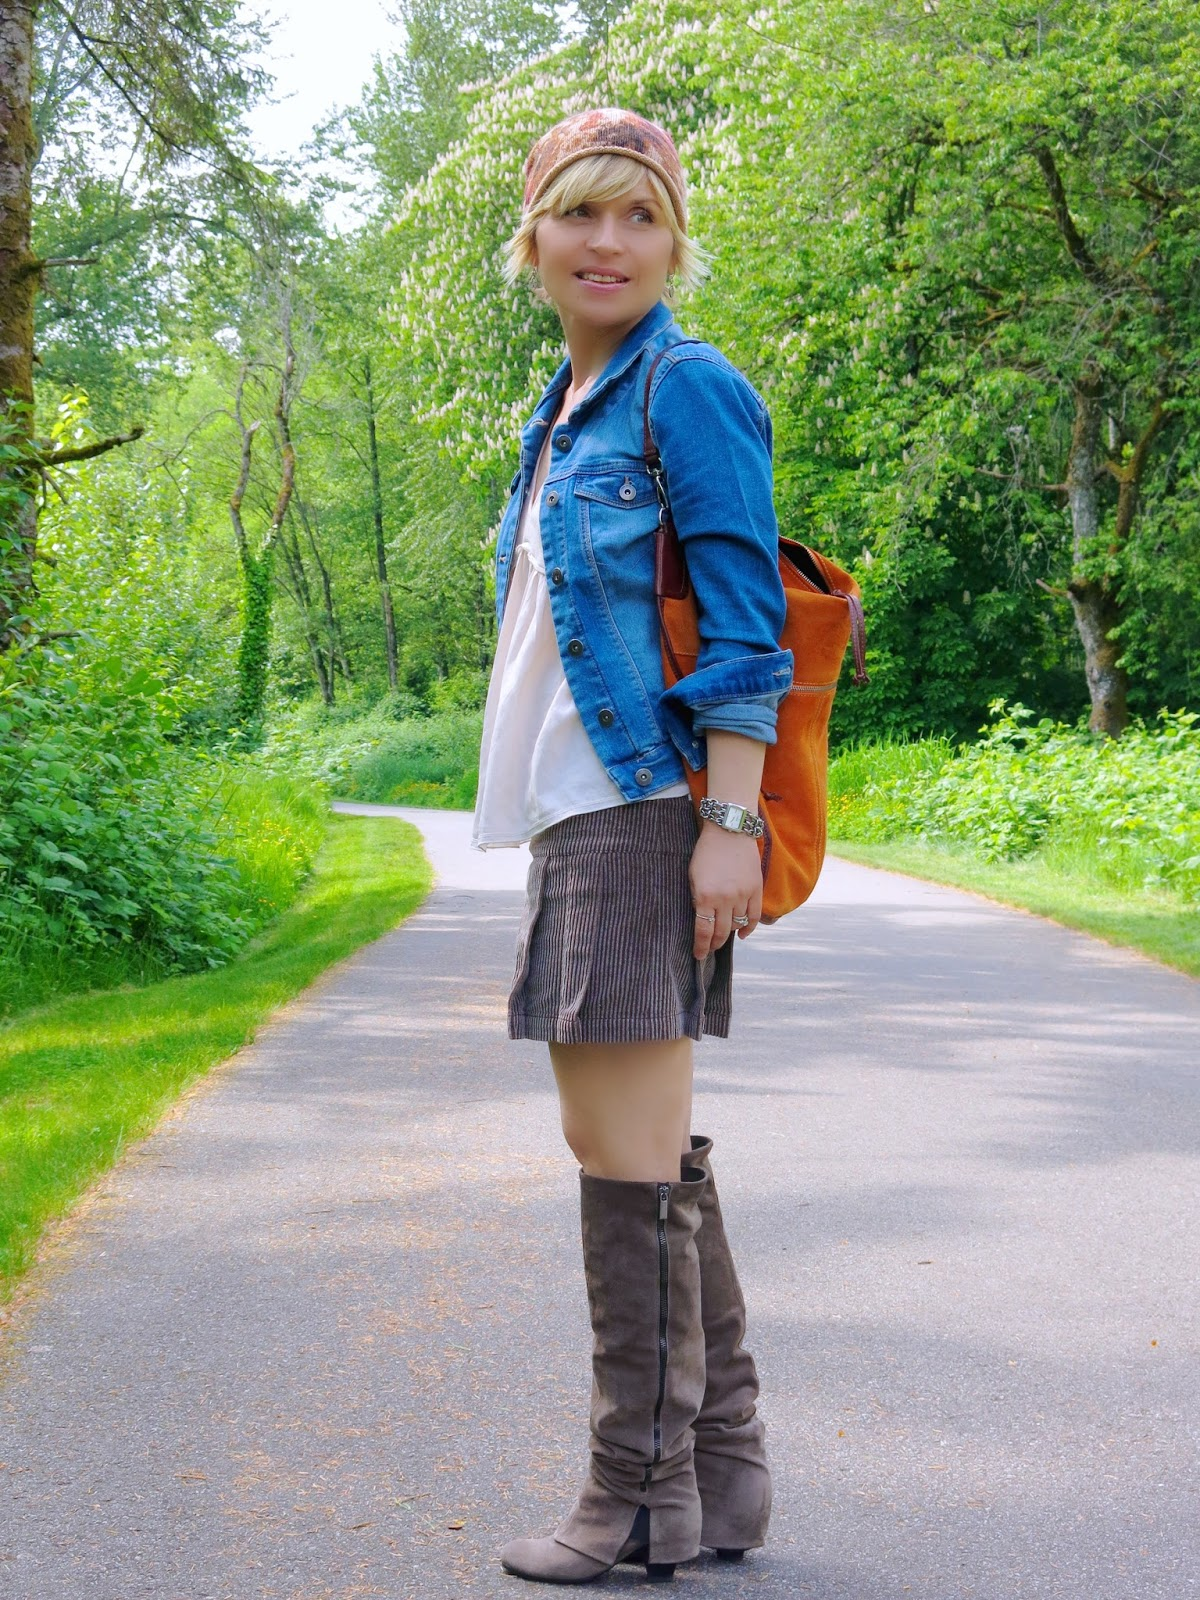 styling a corduroy mini-skirt with suede boots, a denim jacket, and a beanie